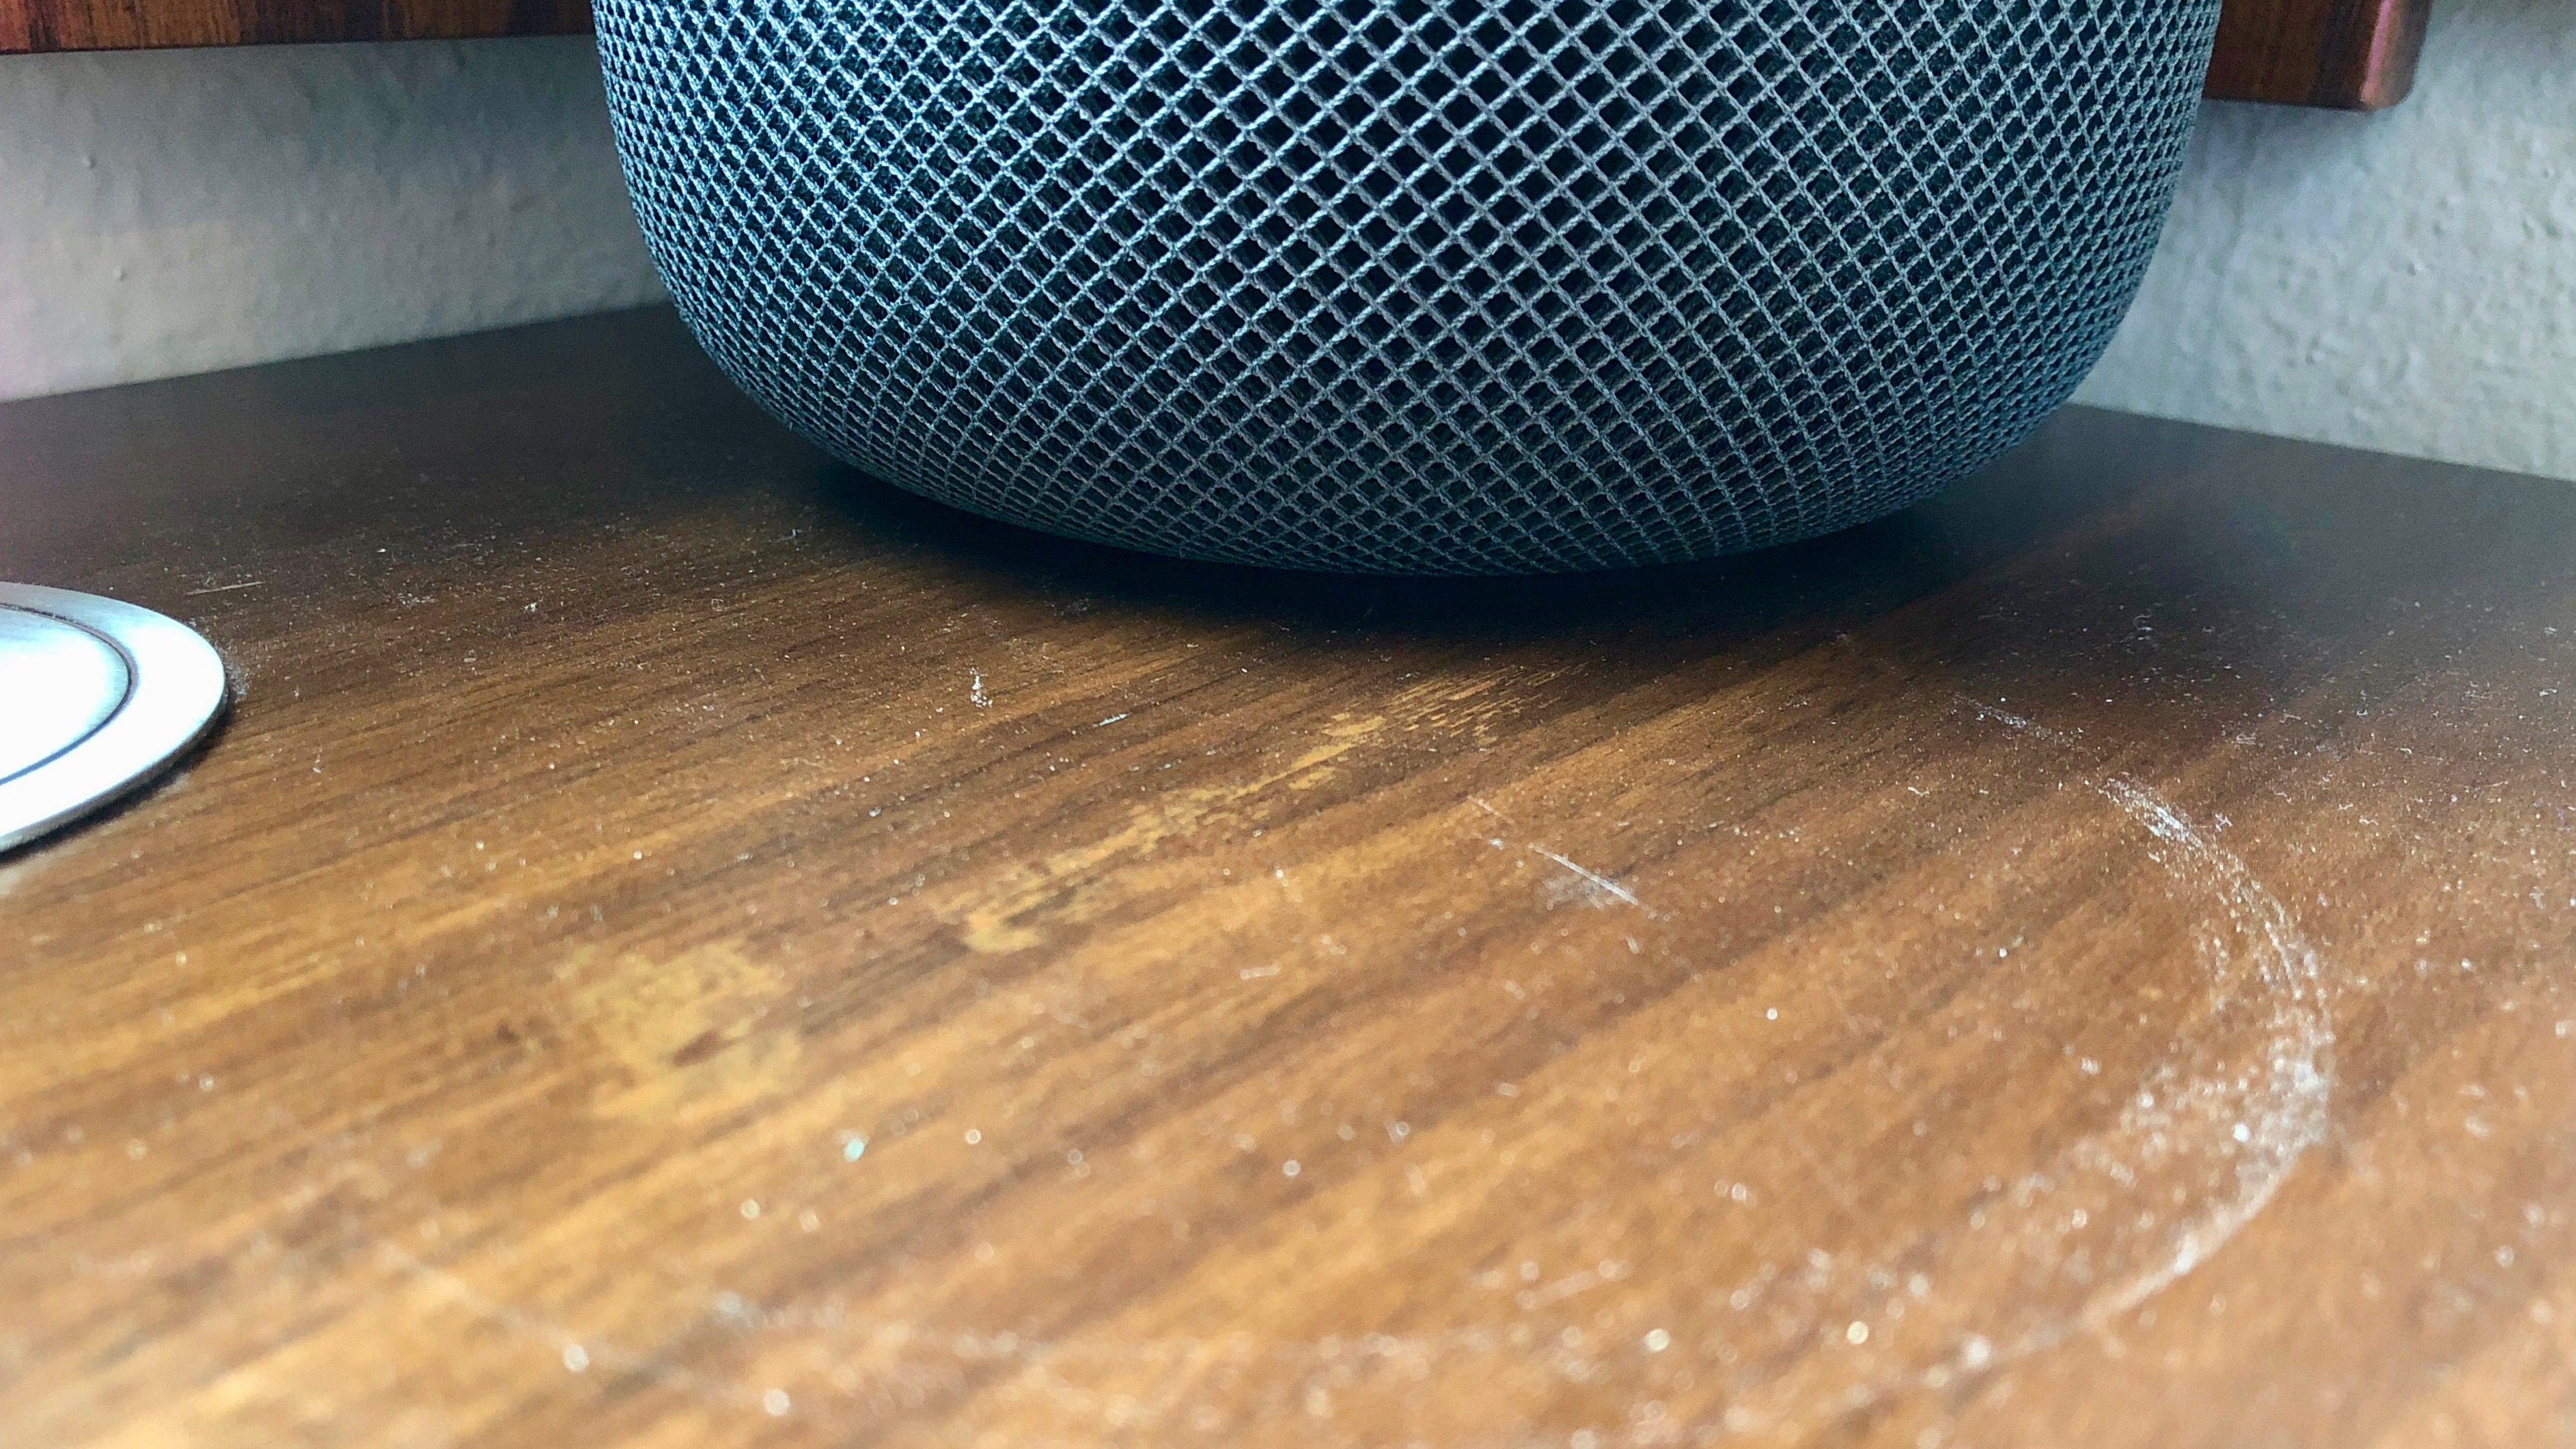 Has The HomePod Left A 'white Ring' On Any Of Your